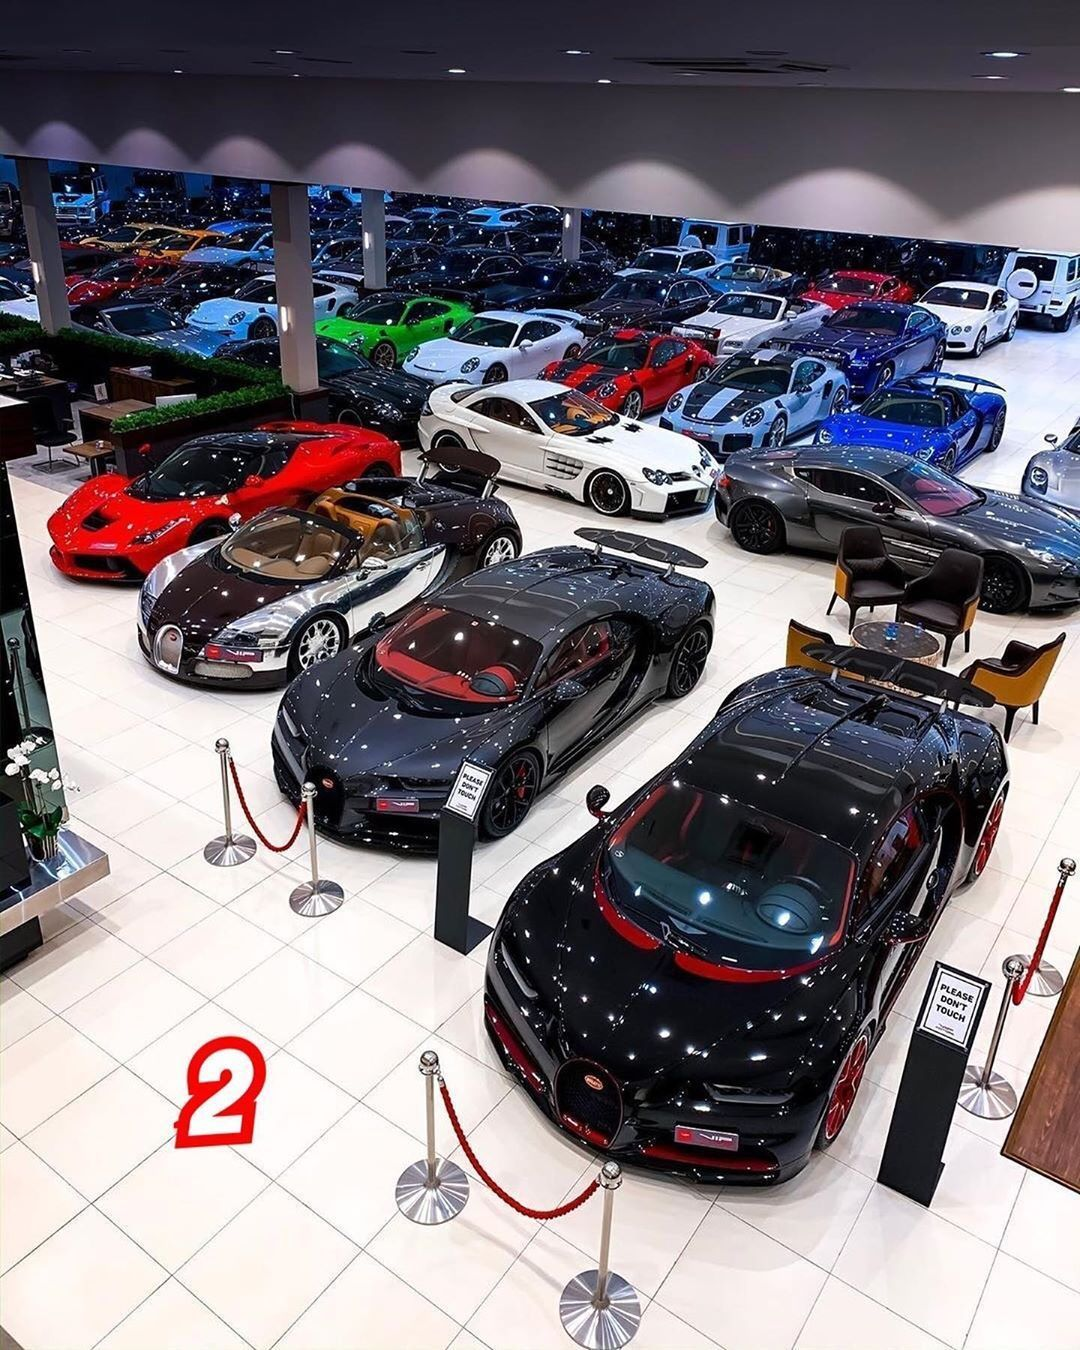 Make Your Life A Masterpiece Imagine No Limitations Click To Be Inspired Luxurycar Luxury Beautiful Supercars Dre In 2020 Concept Cars Sport Cars Car Photos Hd